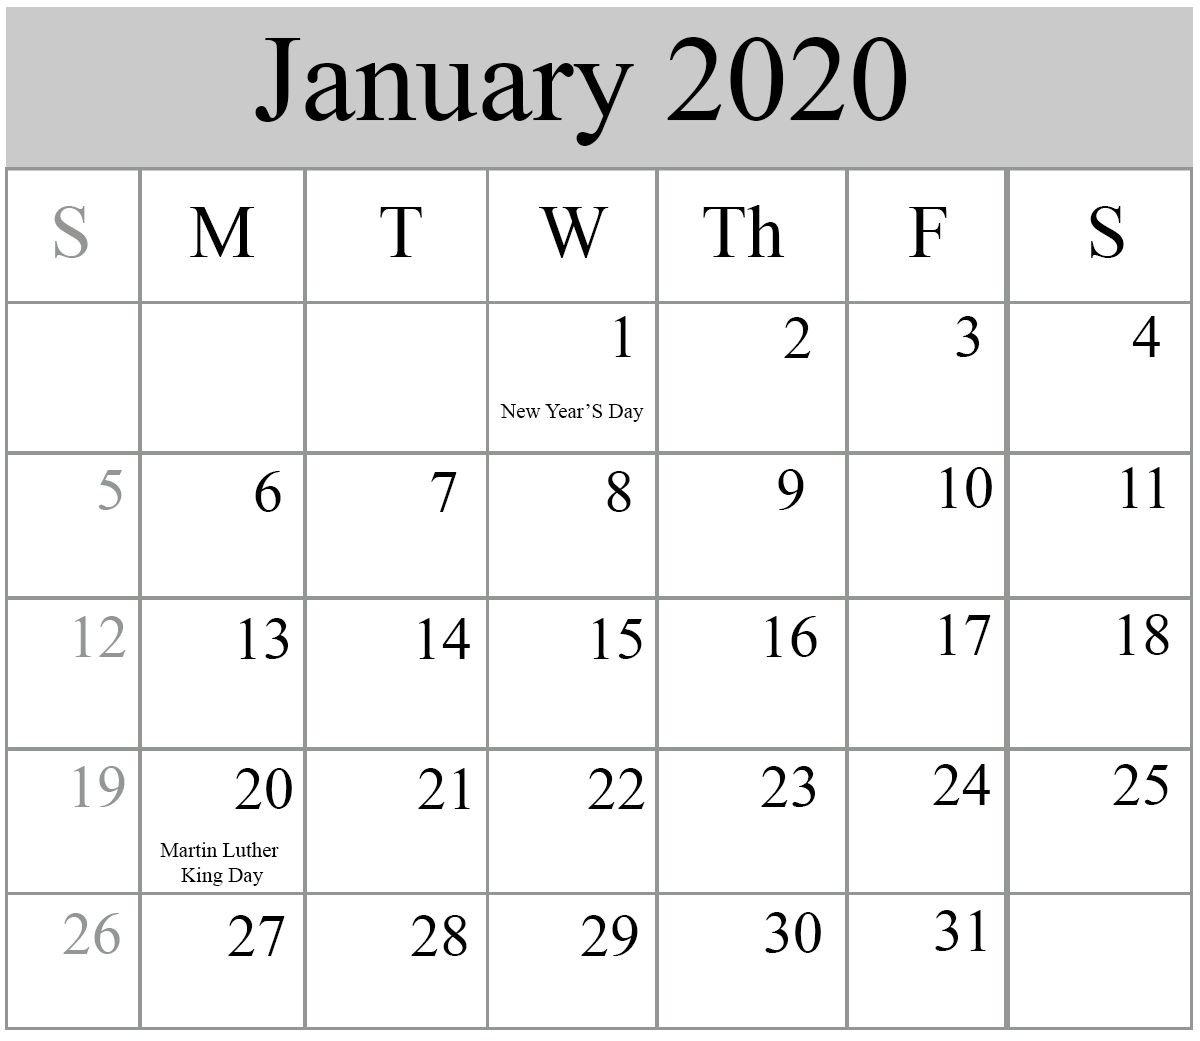 Free Blank January 2020 Calendar Printable In Pdf, Word-January 2020 Calendar Us